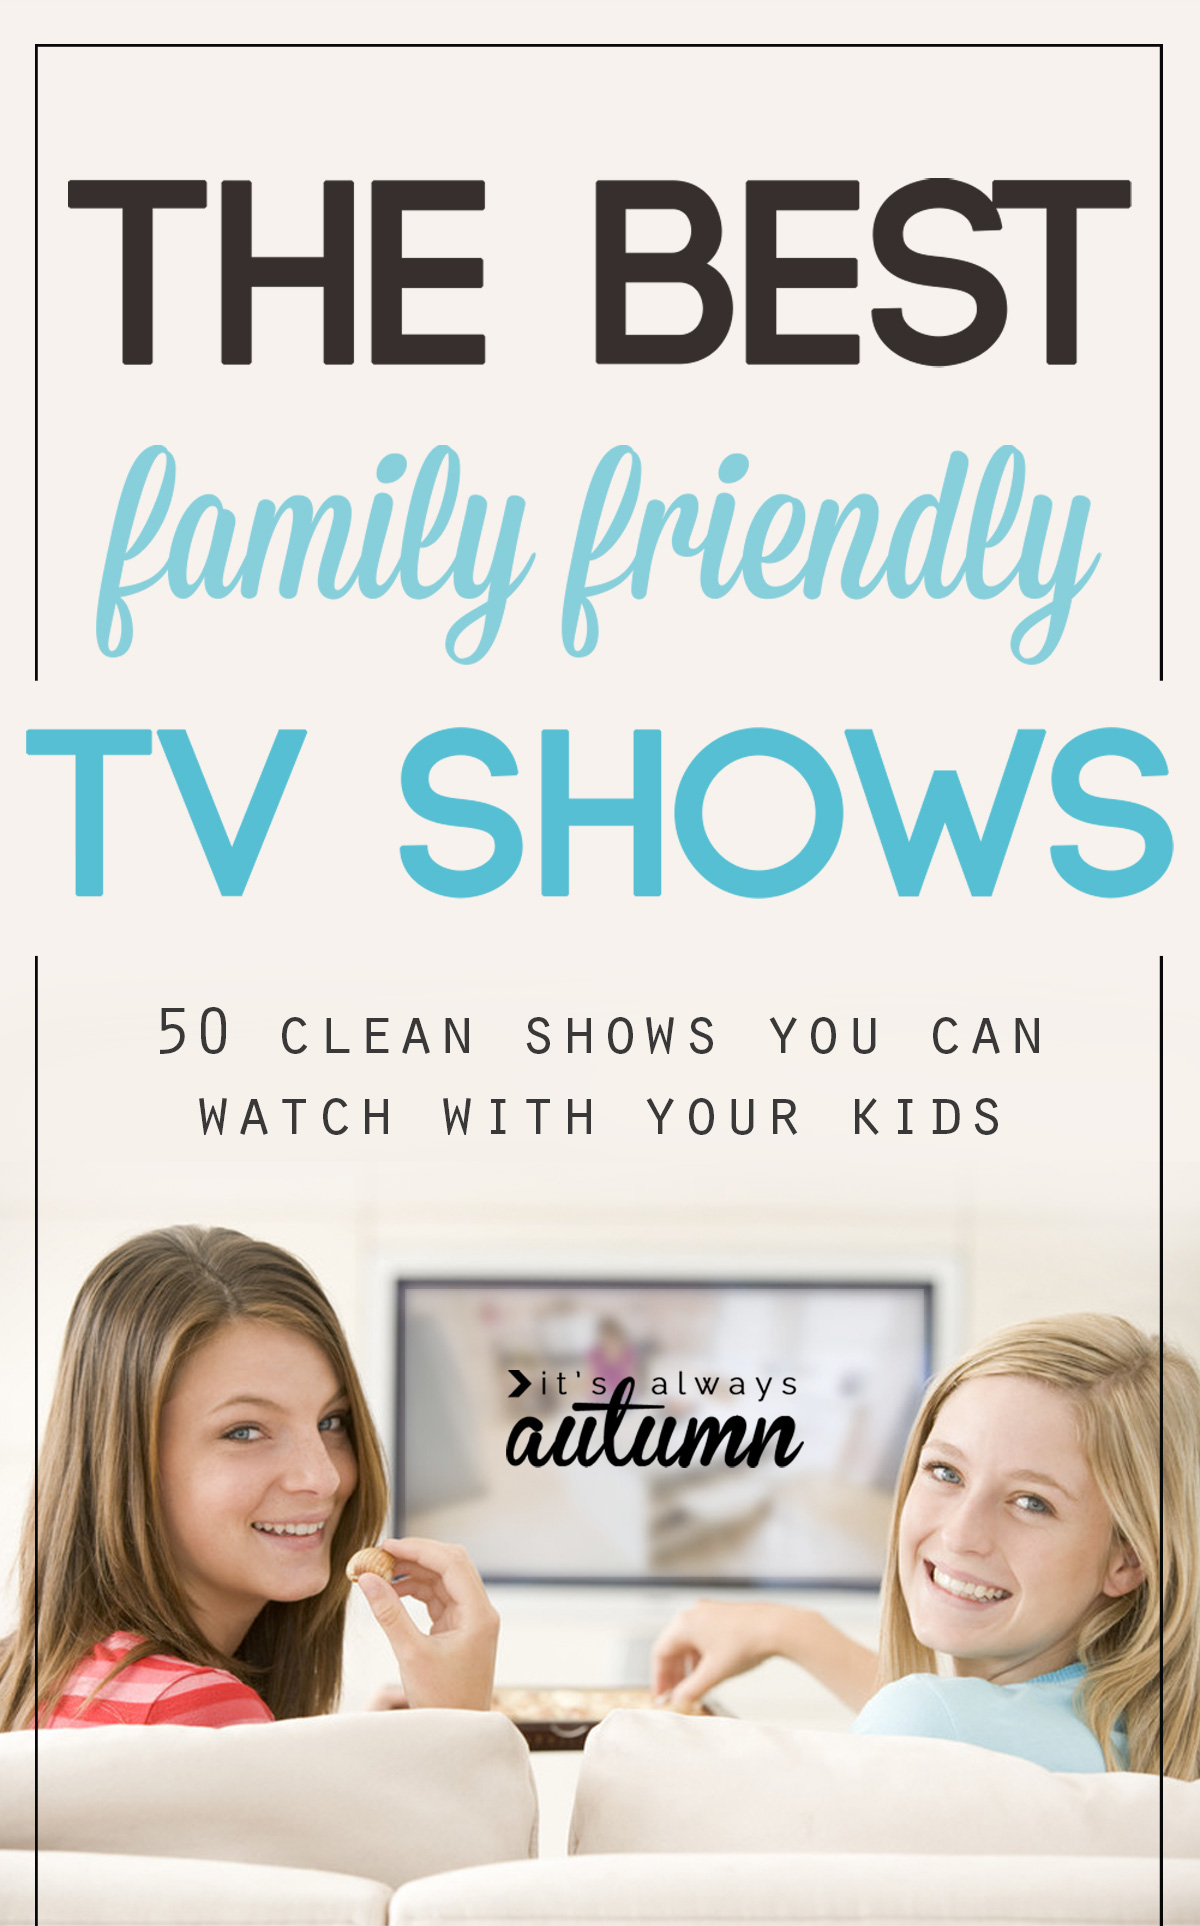 Fantastic list of family shows that are clean enough to watch with your kids!